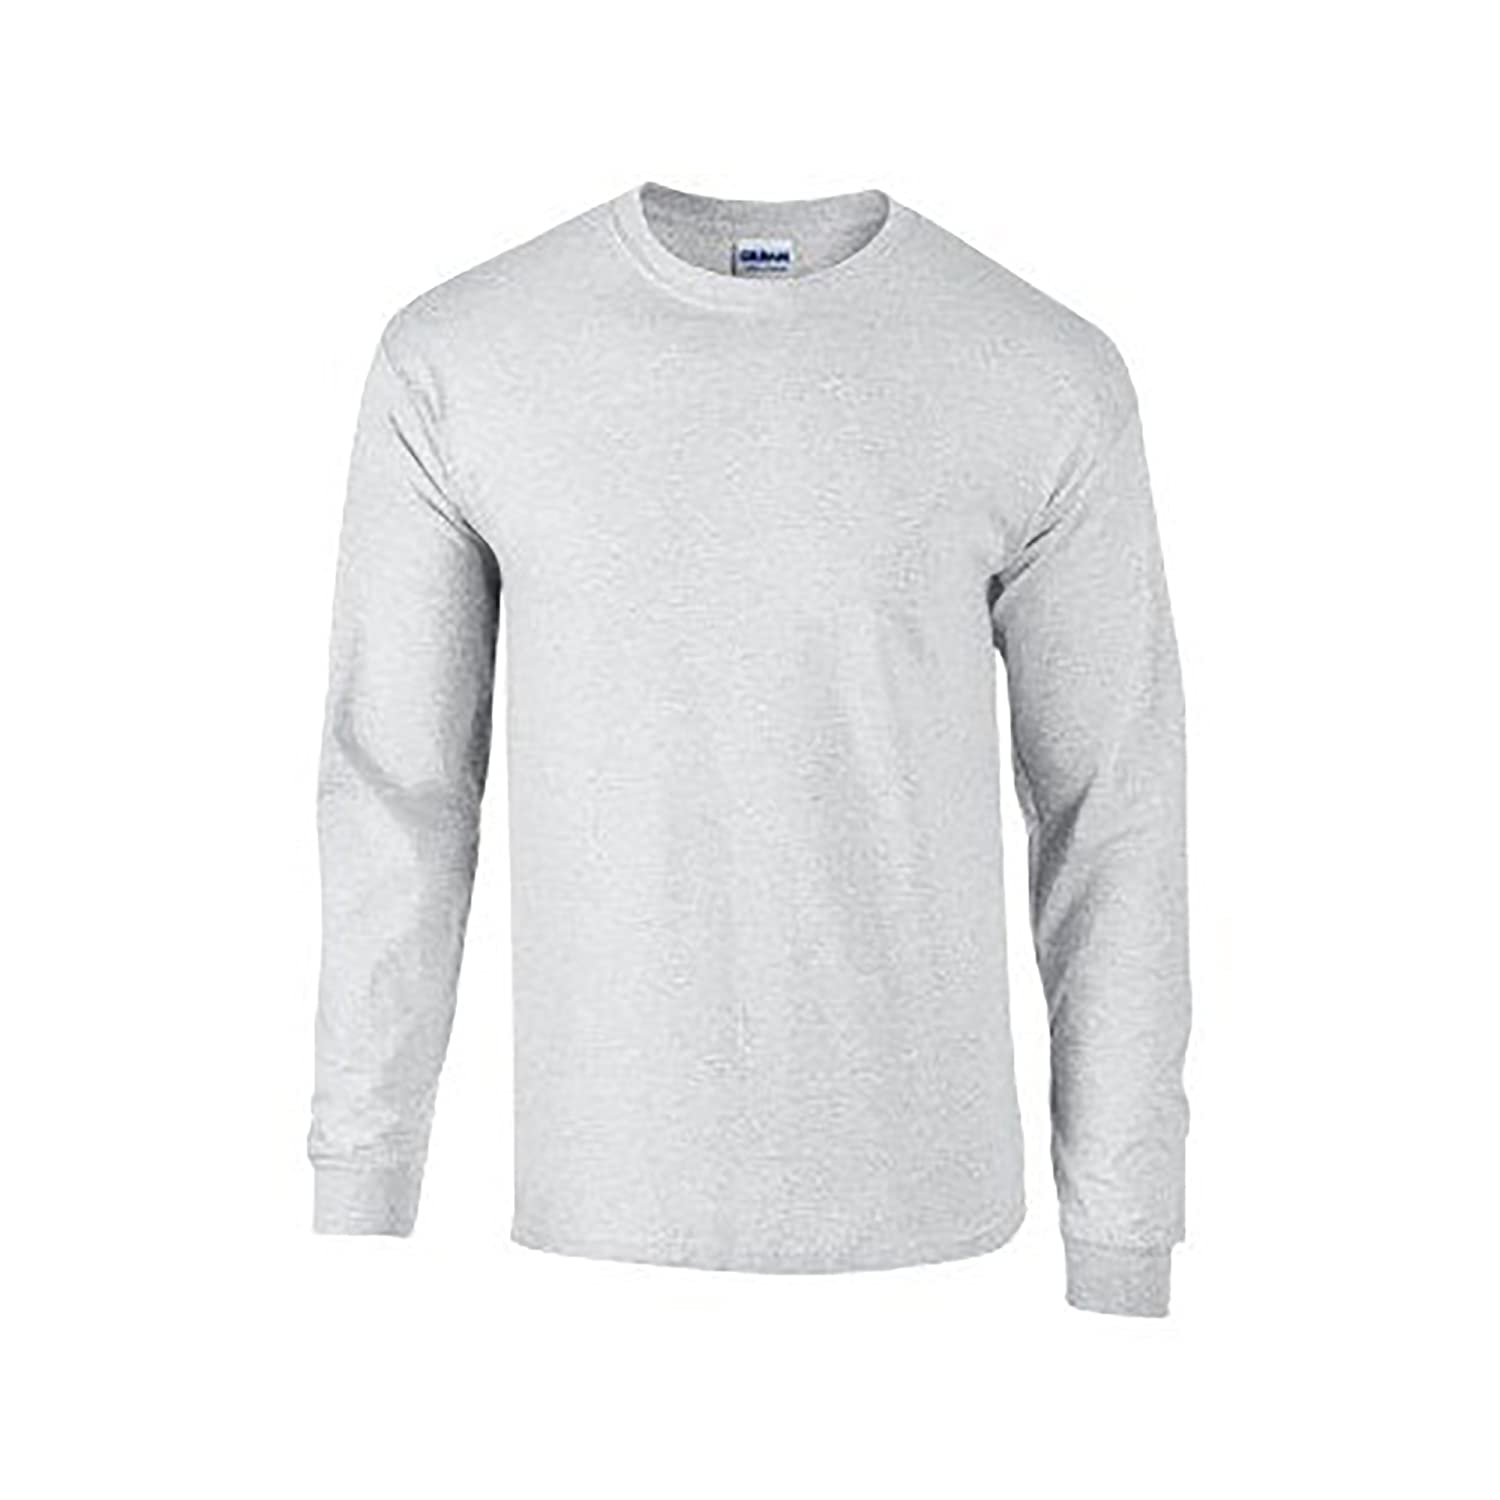 Amazon.com  Gildan Mens Plain Crew Neck Ultra Cotton Long Sleeve T-Shirt   Clothing 10676d0038f